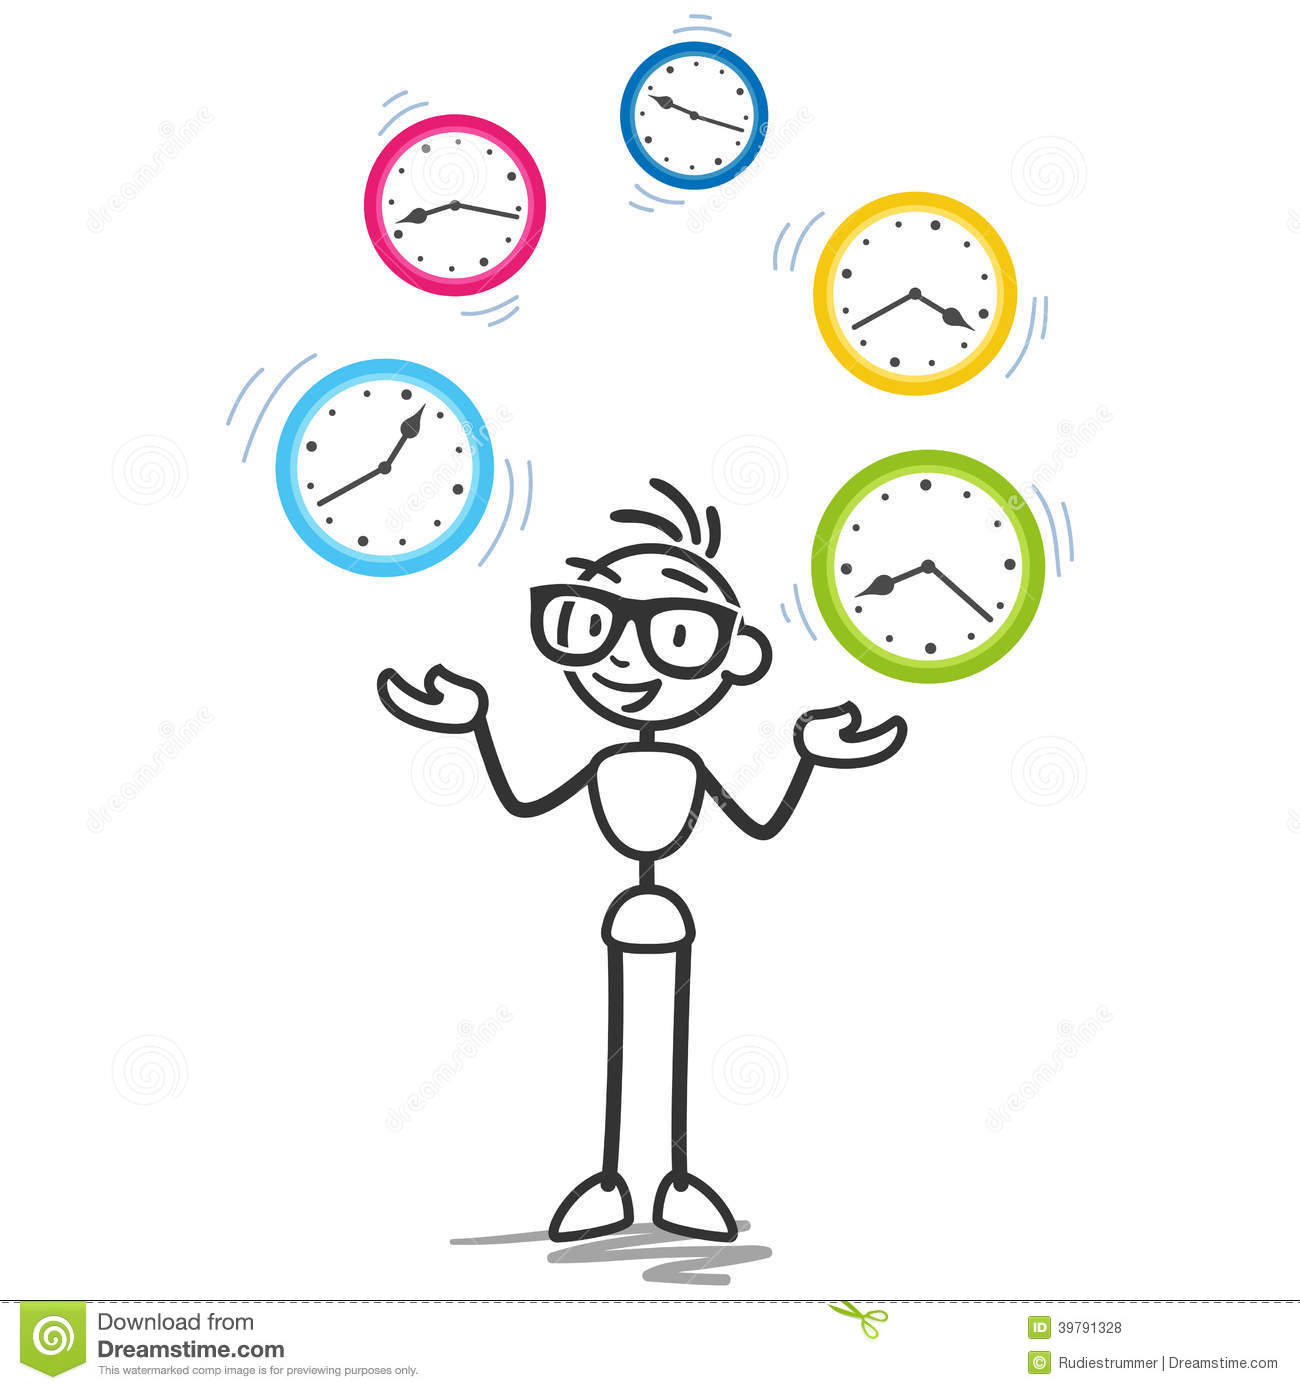 Stickman time management productivity schedule